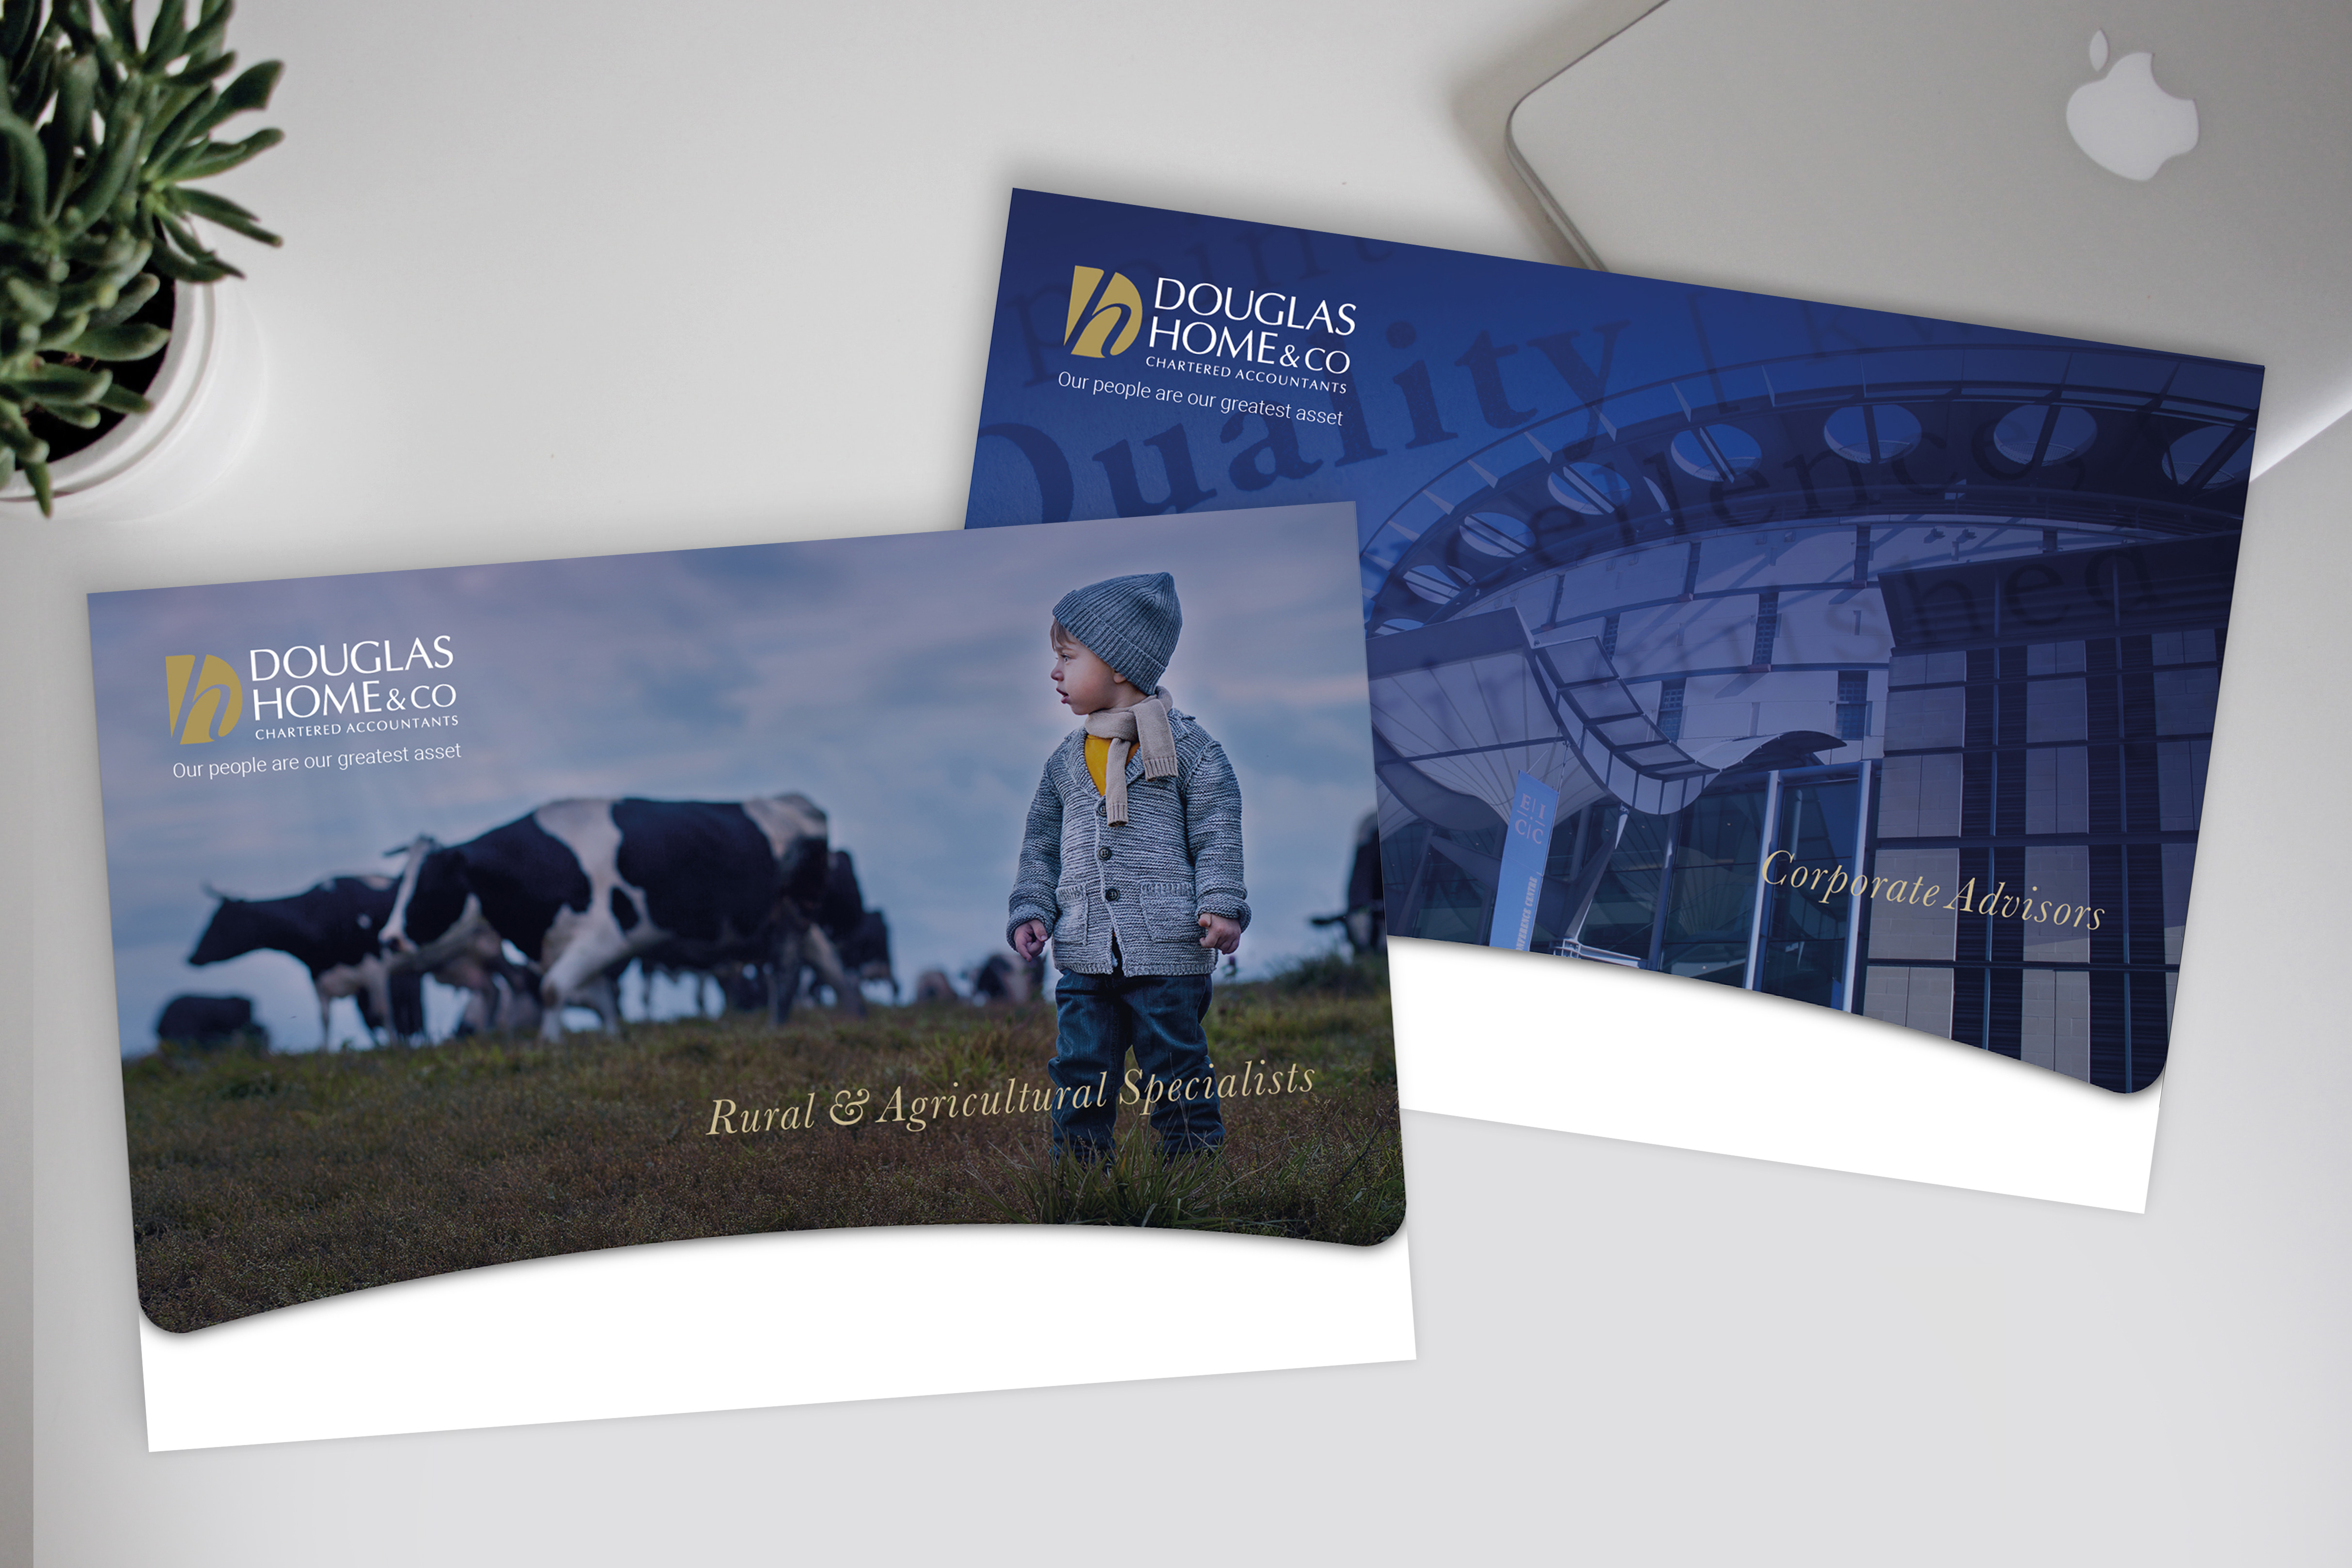 Douglas Home & Co Chartered Accountants Brochure and Folder Design